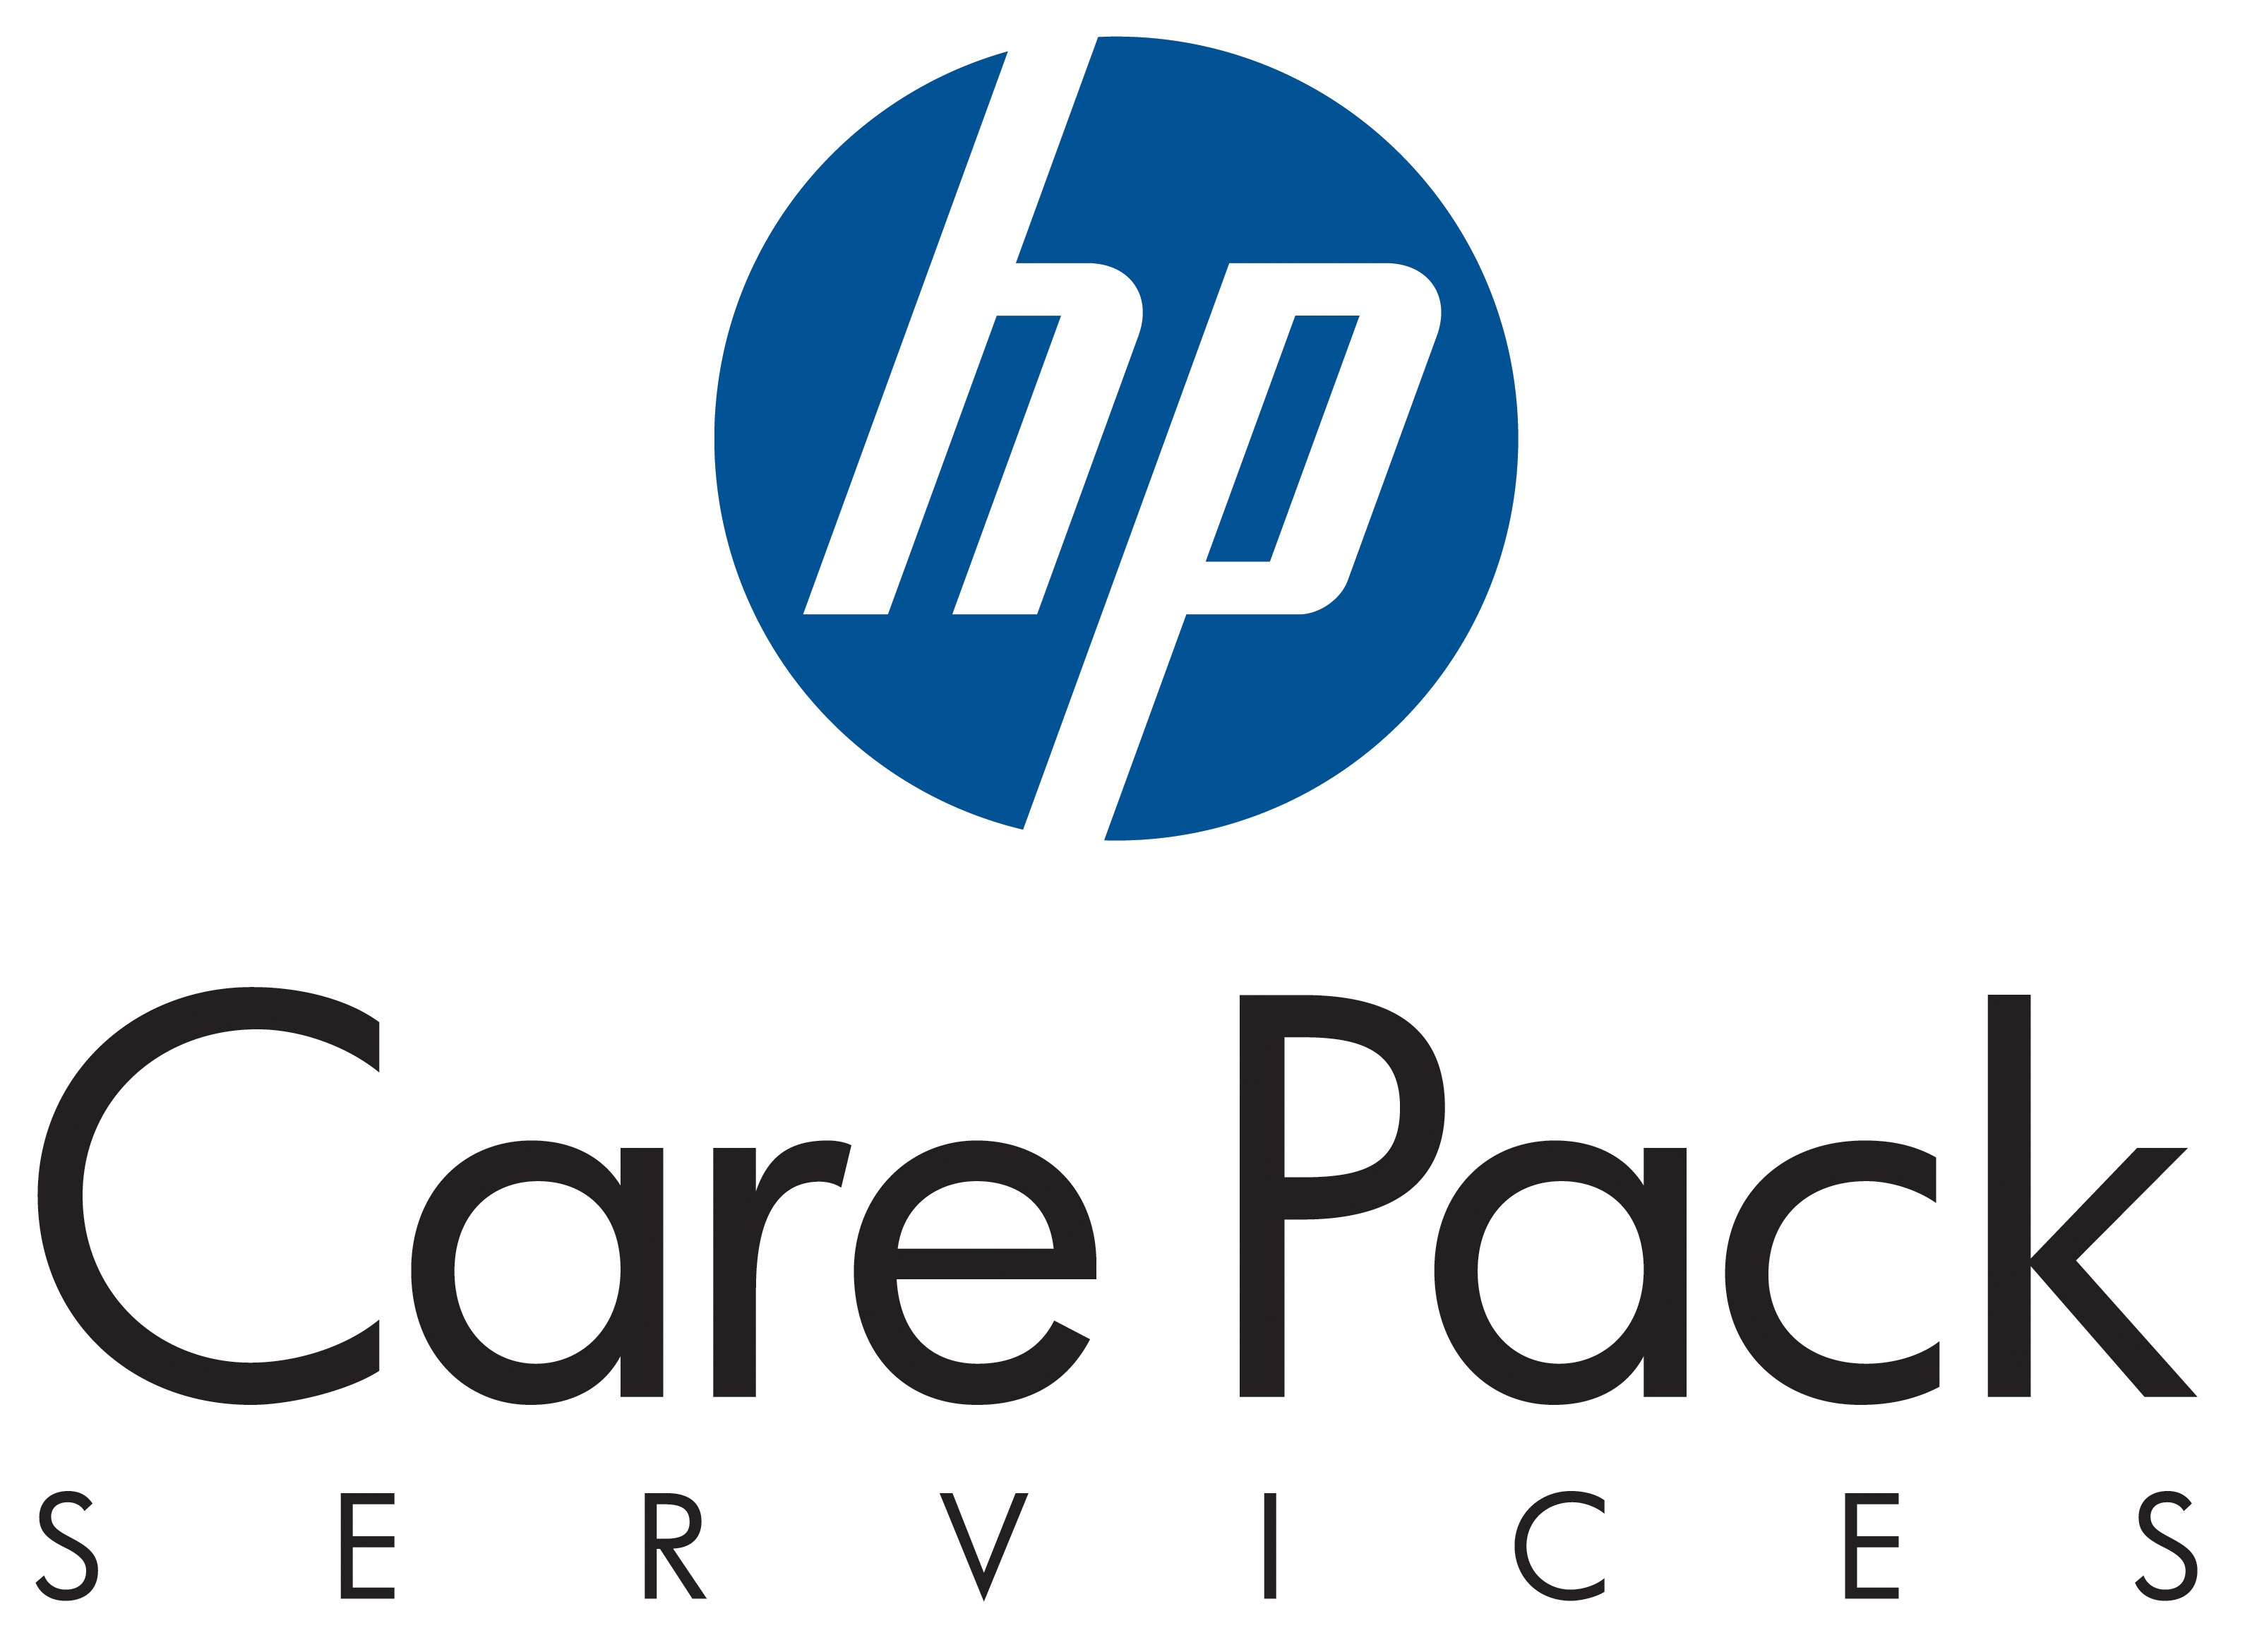 Hewlett Packard Customer Service Uk Essays Uk PIBS FE laxLnaysw Hewlett Packard Customer Service Uk